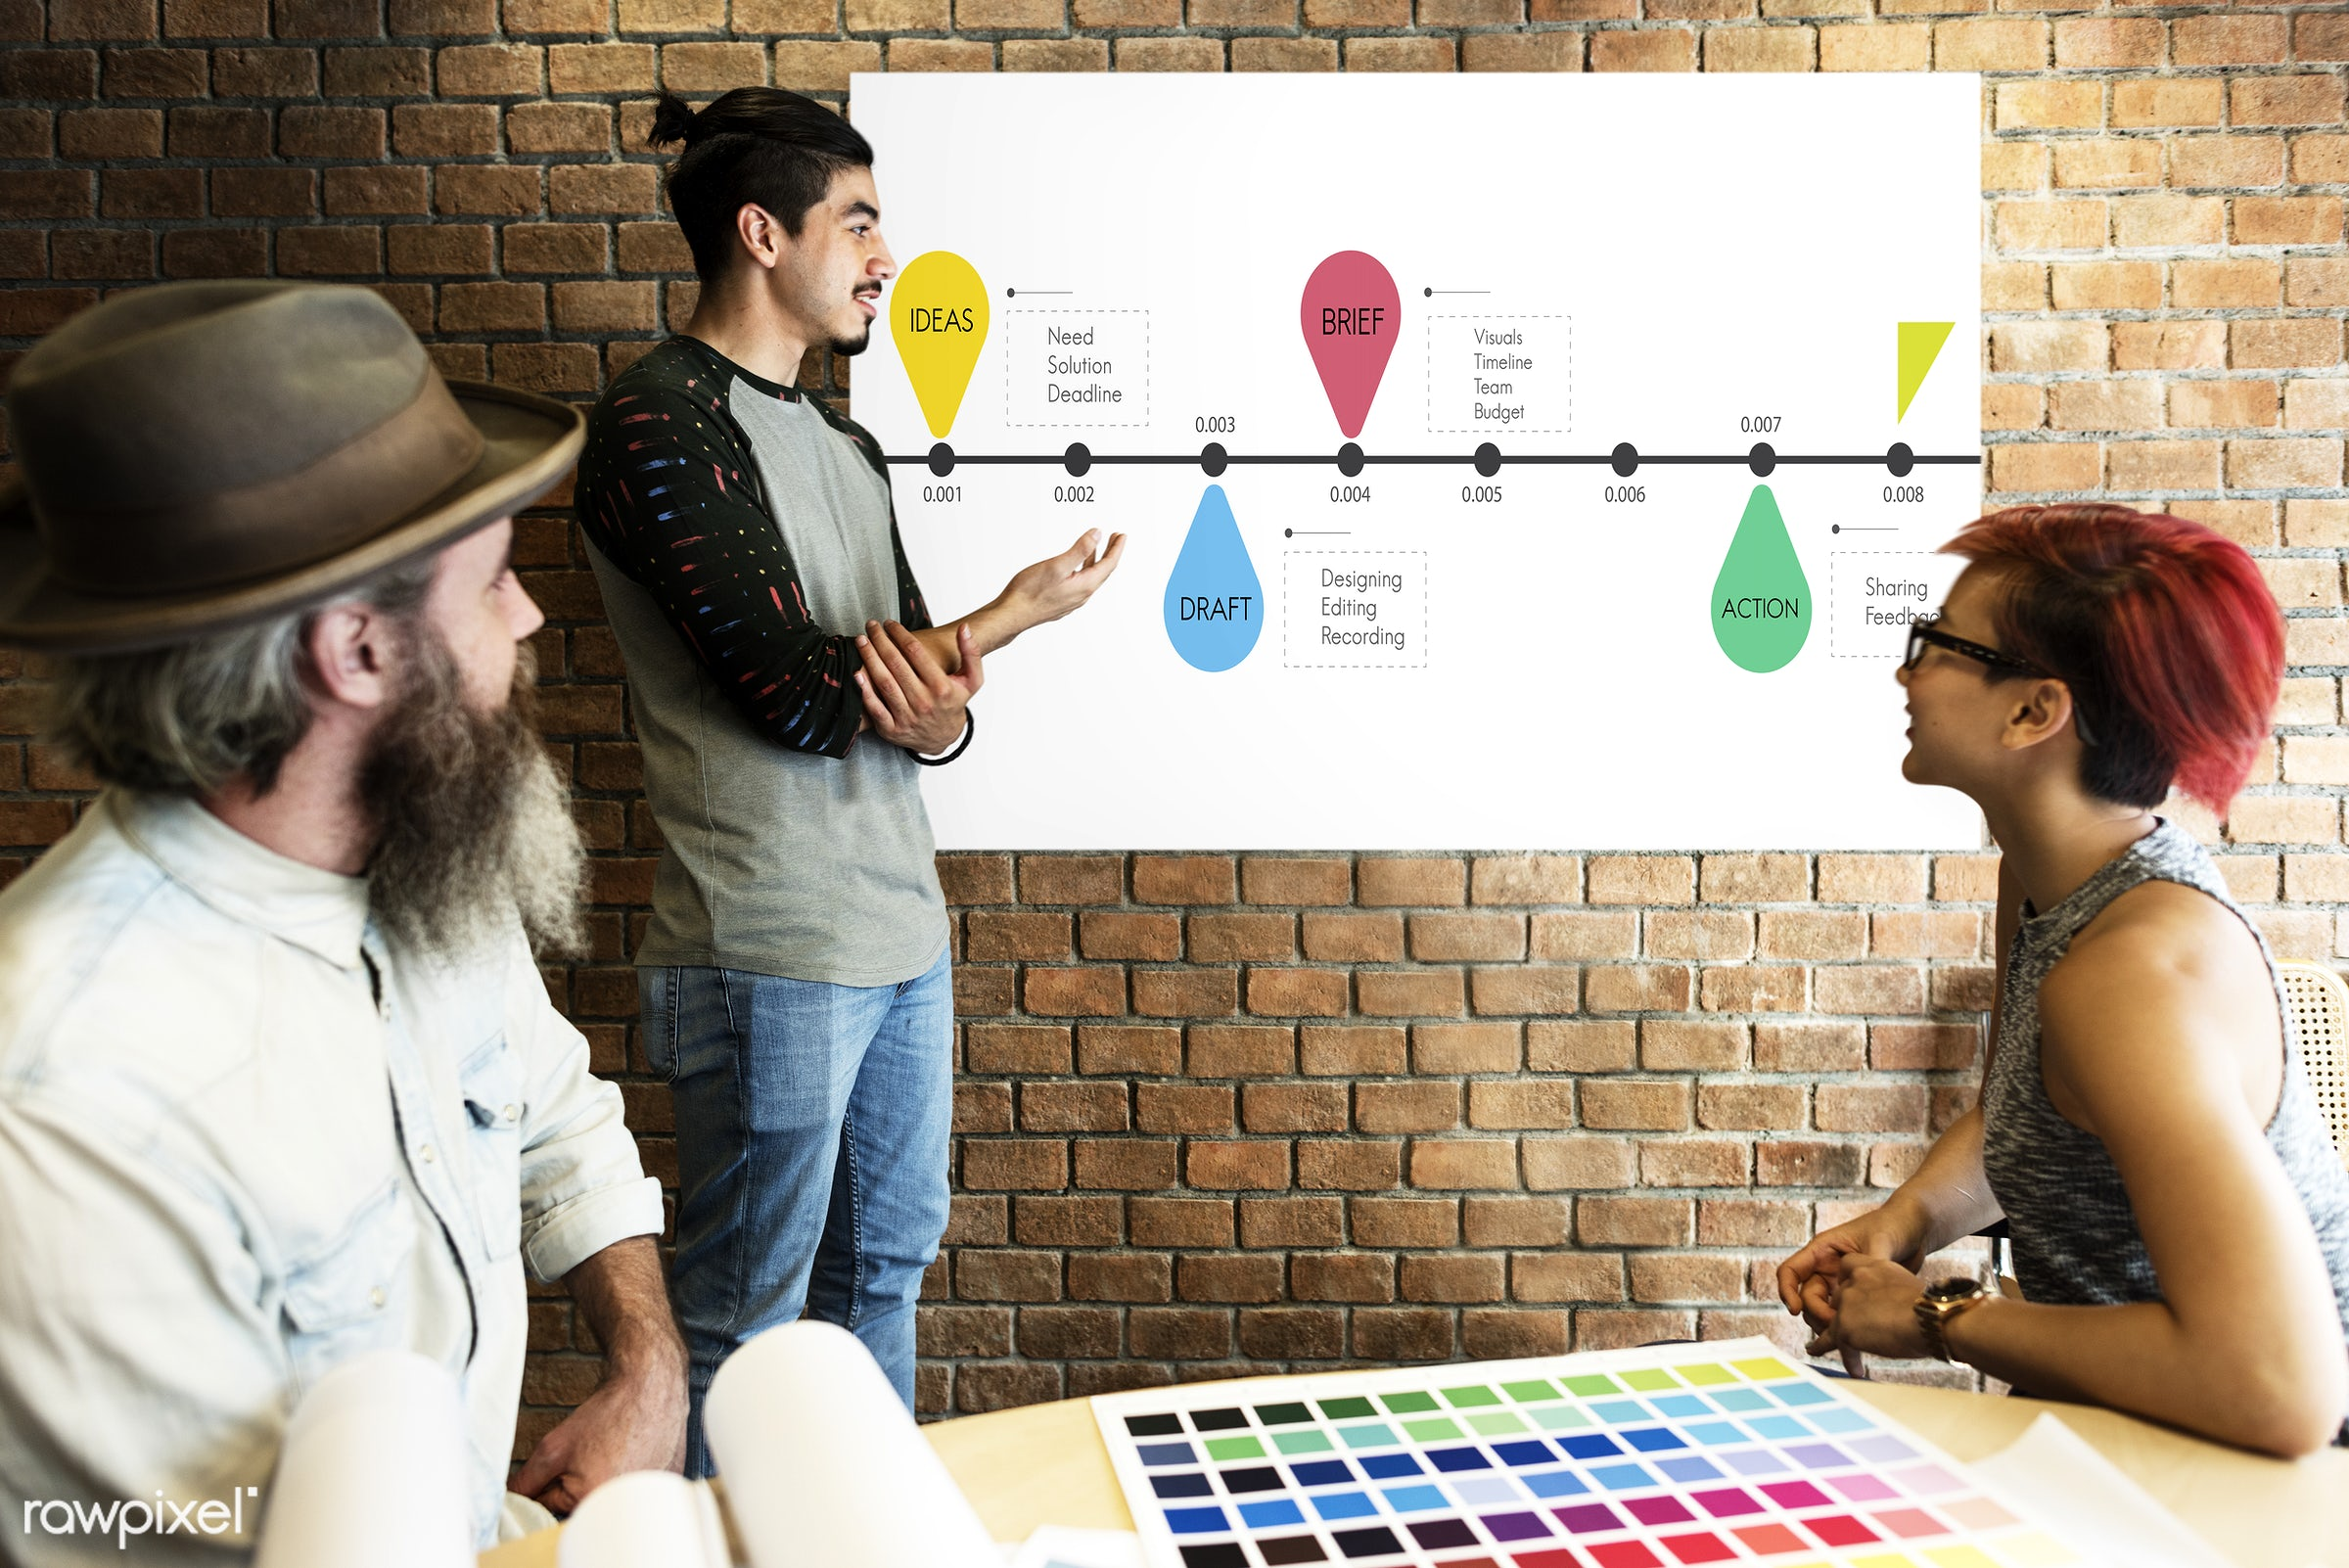 actions, art, beard, board, brick wall, brief, budget, chart, color chart, colors, creative, deadline, design, designing,...